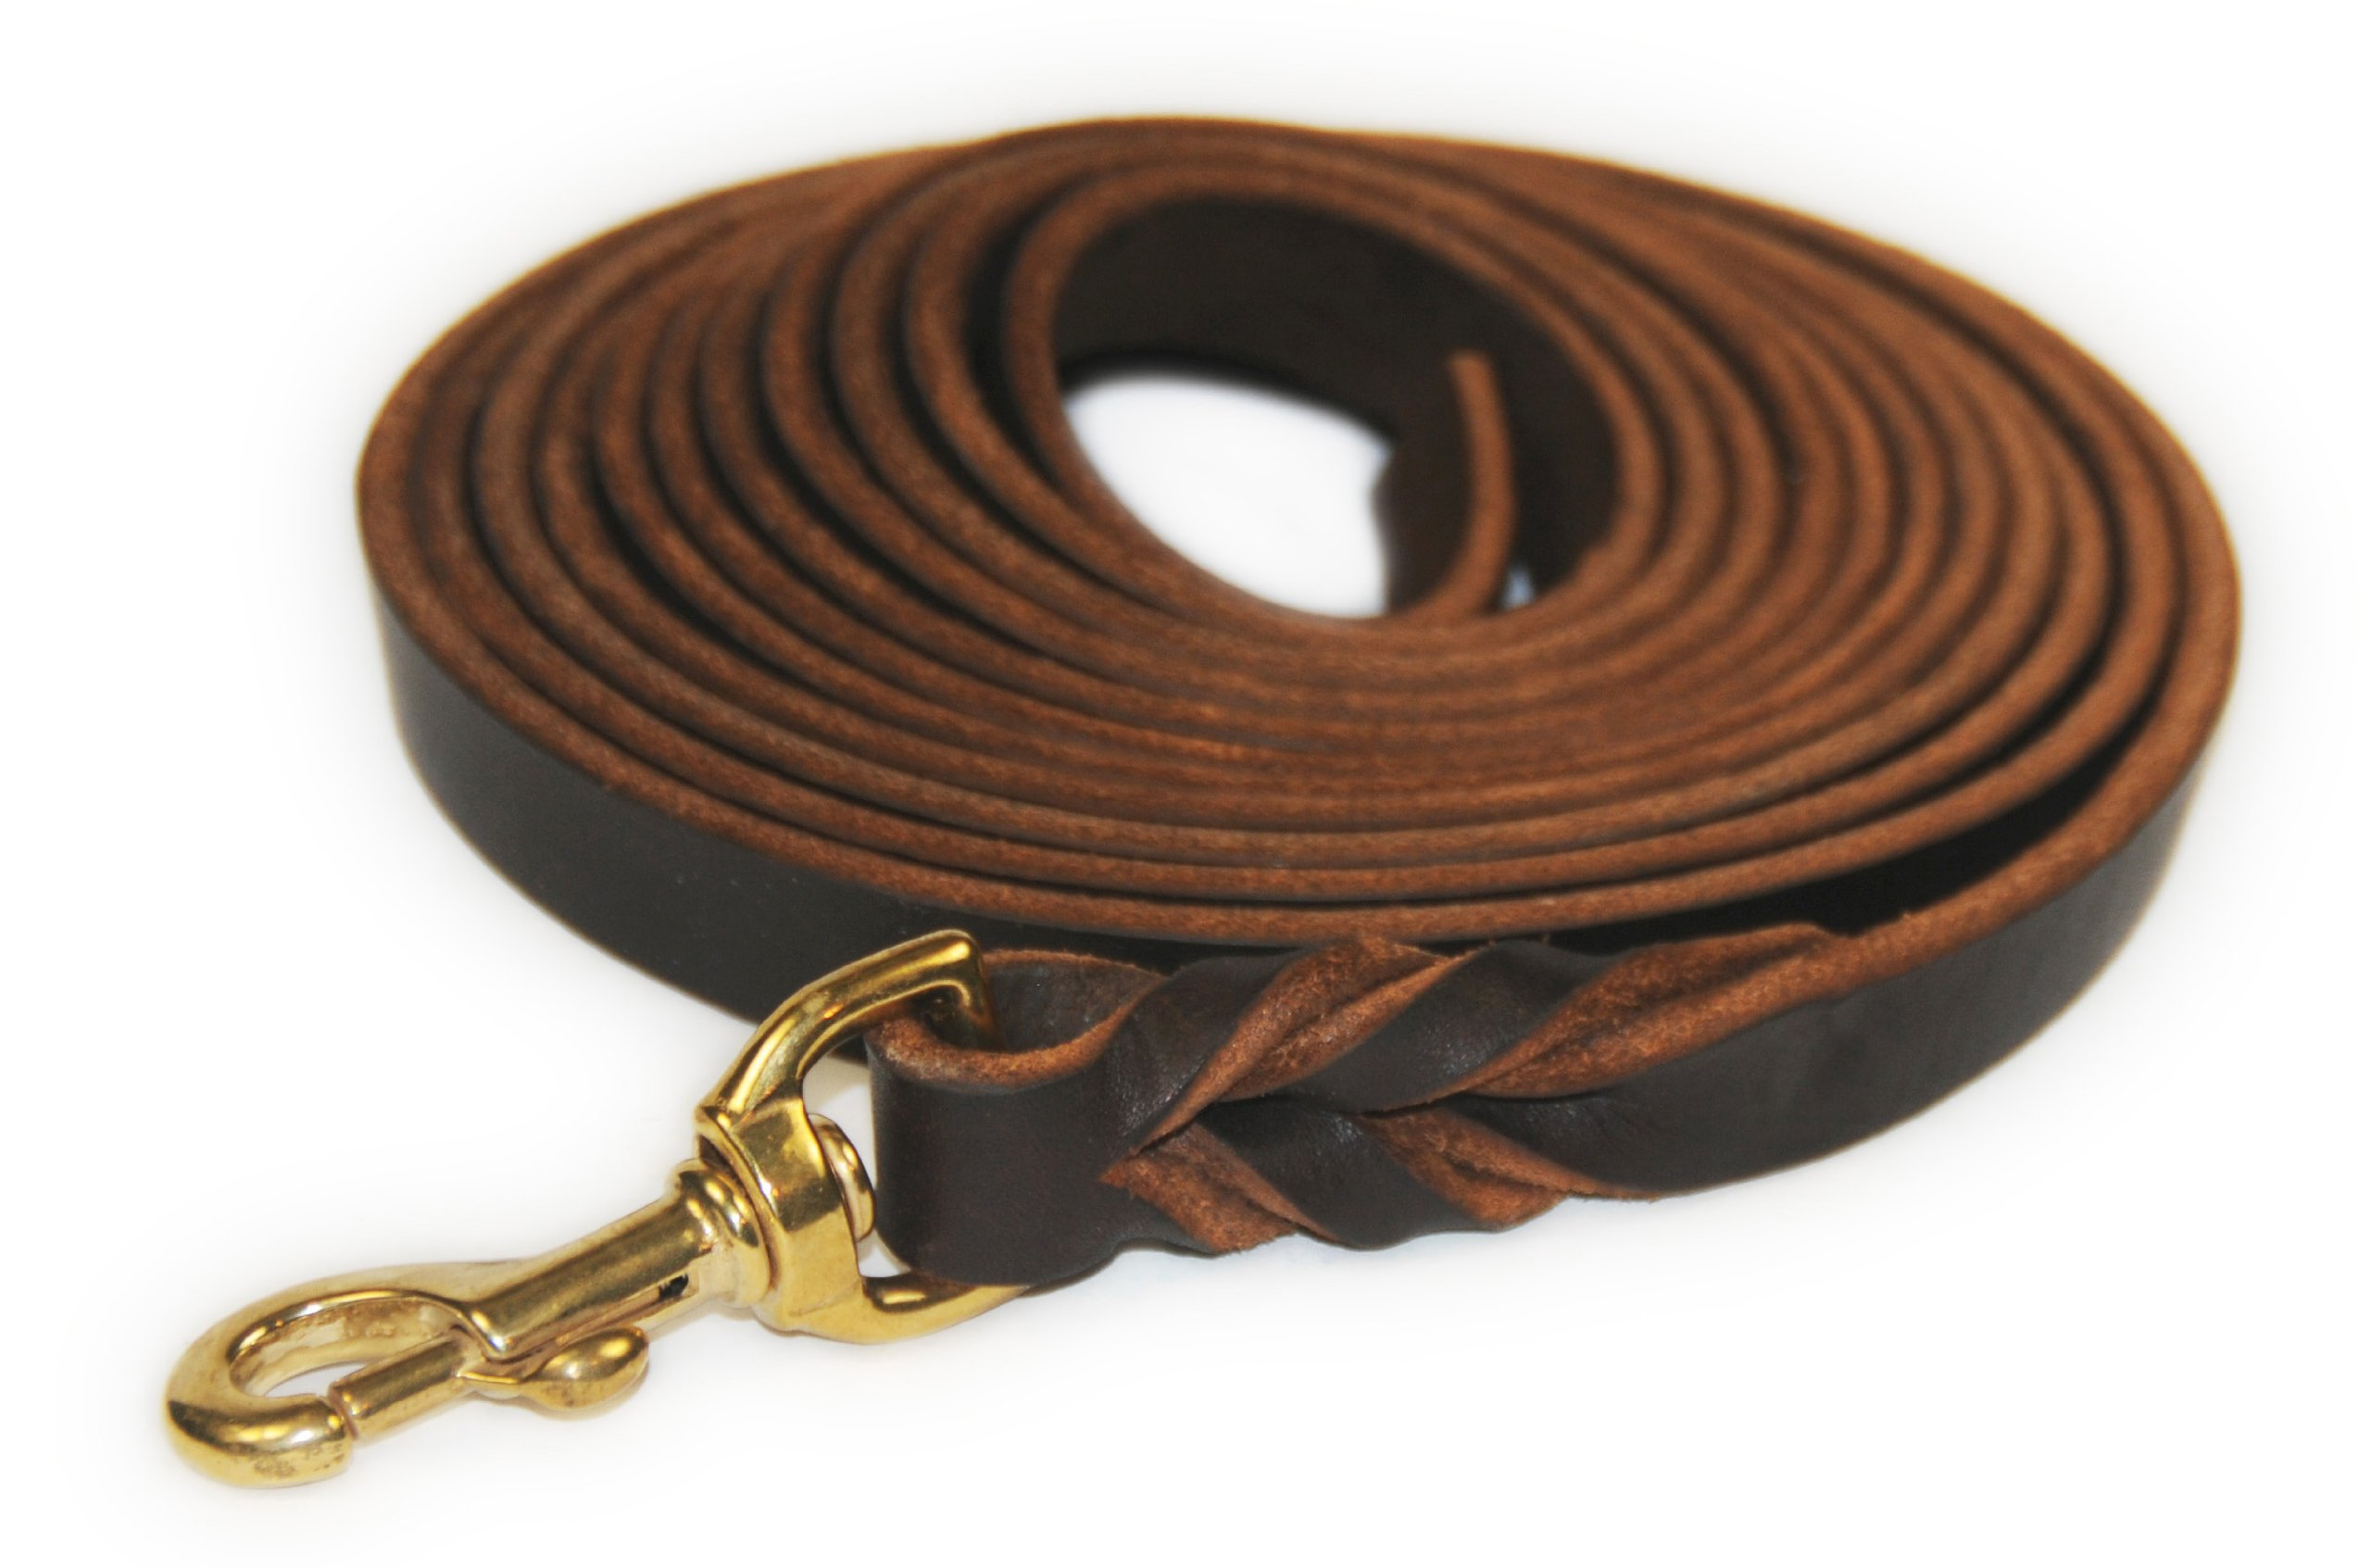 Dean and Tyler Braided Track Dog Leash with Solid Brass Hardware, 26-Feet by 3/8-Inch, Brown